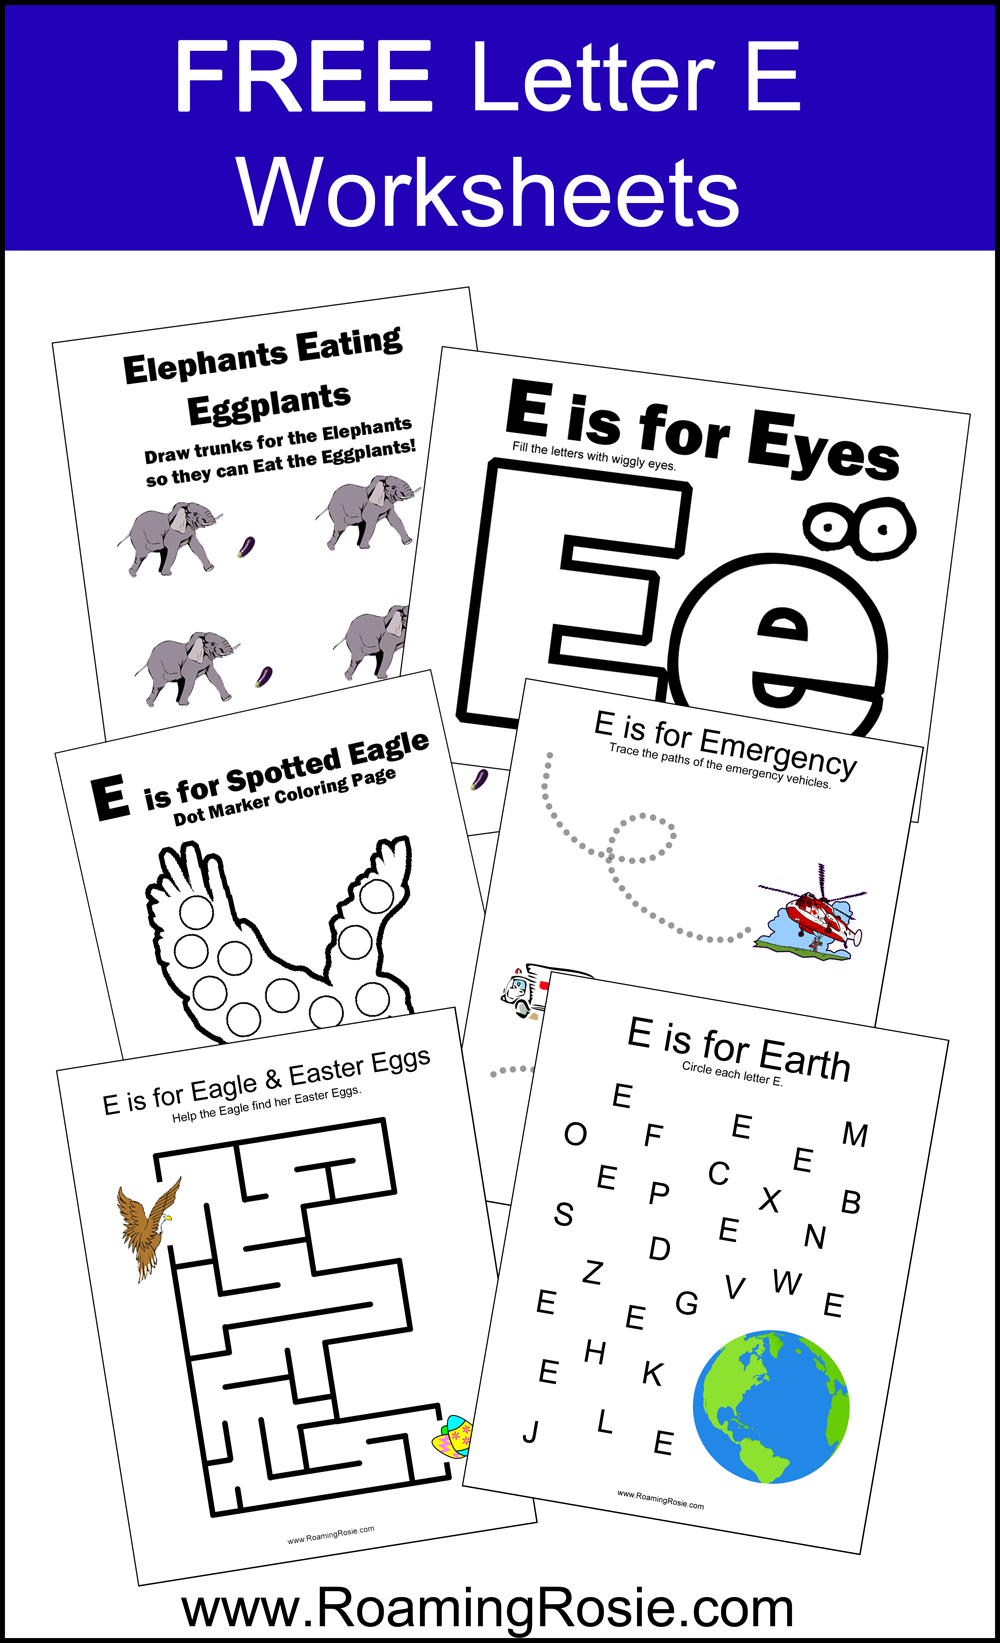 image relating to Letter E Printable named Letter E: Absolutely free Alphabet Worksheets for Youngsters Roaming Rosie